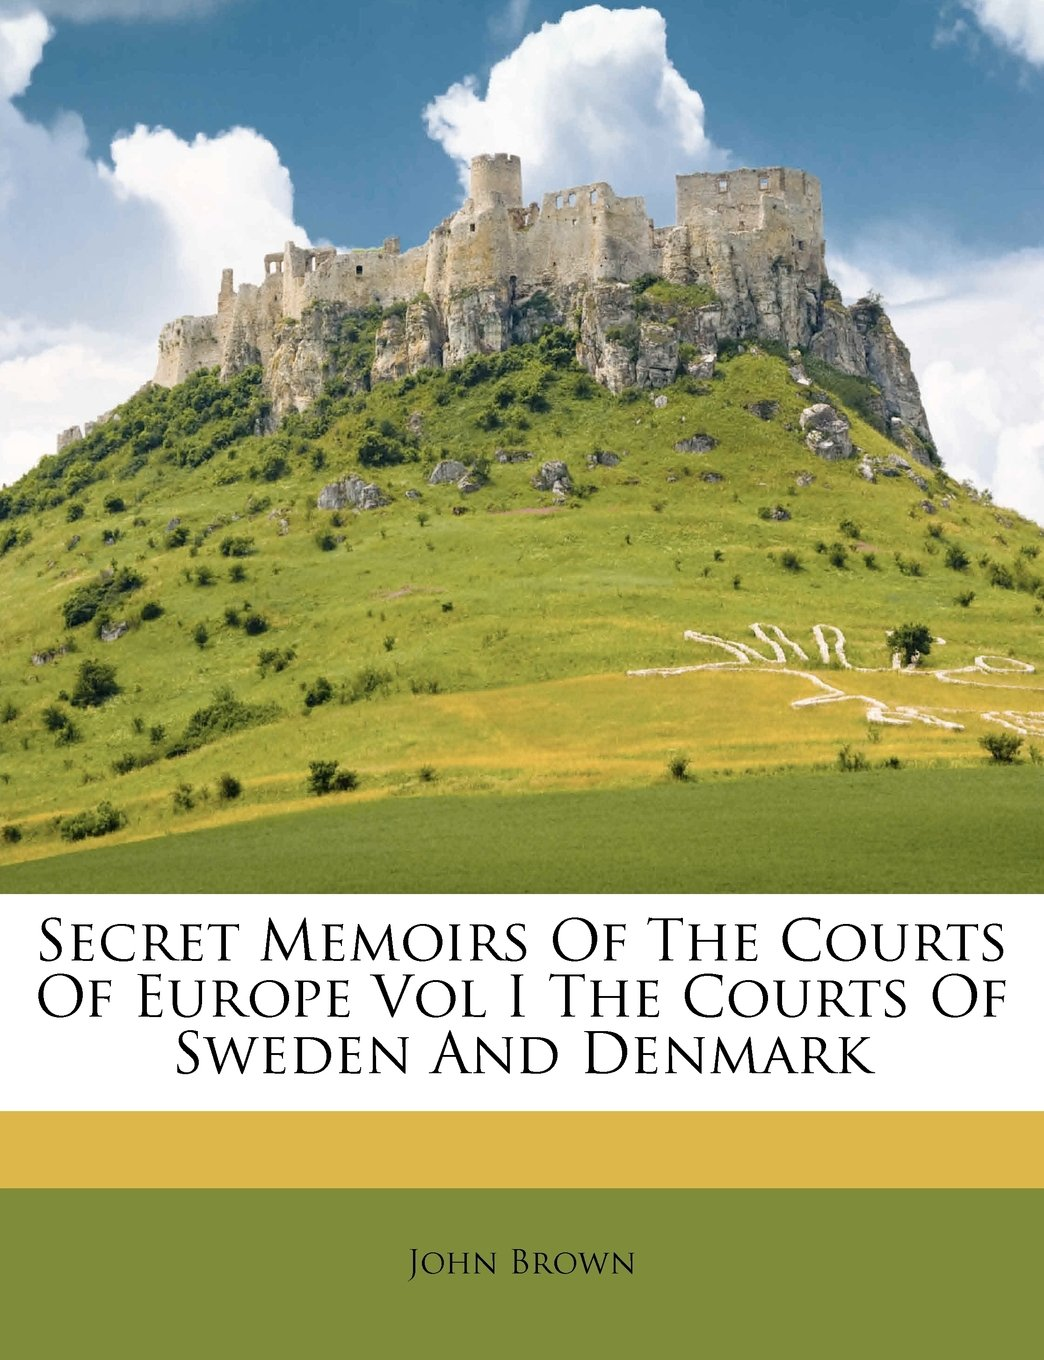 Read Online Secret Memoirs Of The Courts Of Europe Vol I The Courts Of Sweden And Denmark pdf epub